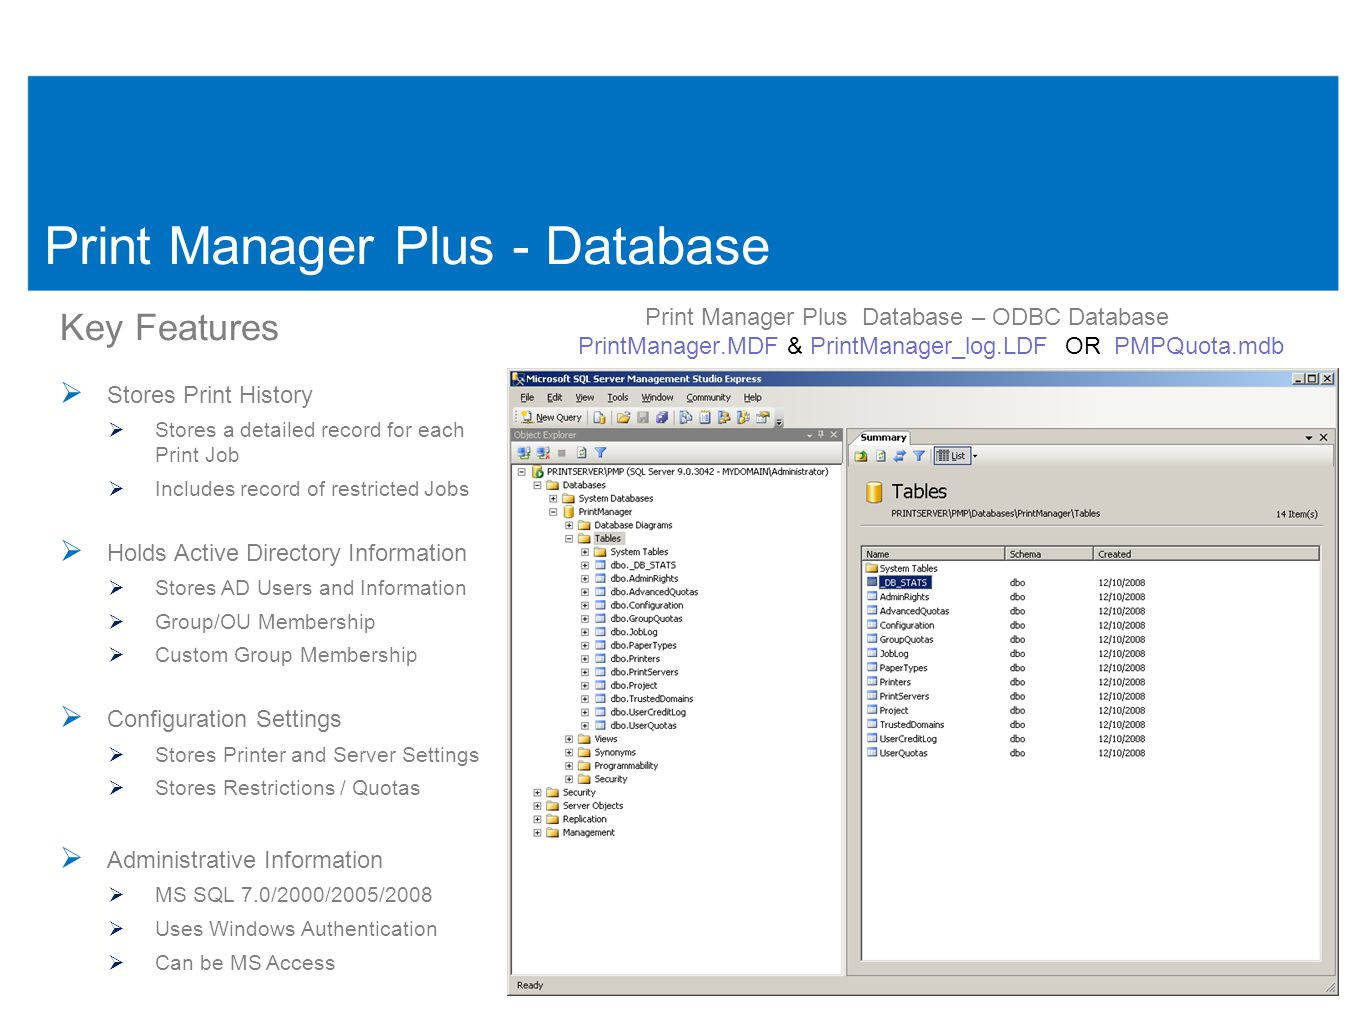 18 Print Manager Plus - Database Print Manager Plus Database – ODBC Database PrintManager.MDF & PrintManager_log.LDF OR PMPQuota.mdb 18 Key Features  Stores Print History  Stores a detailed record for each Print Job  Includes record of restricted Jobs  Holds Active Directory Information  Stores AD Users and Information  Group/OU Membership  Custom Group Membership  Configuration Settings  Stores Printer and Server Settings  Stores Restrictions / Quotas  Administrative Information  MS SQL 7.0/2000/2005/2008  Uses Windows Authentication  Can be MS Access